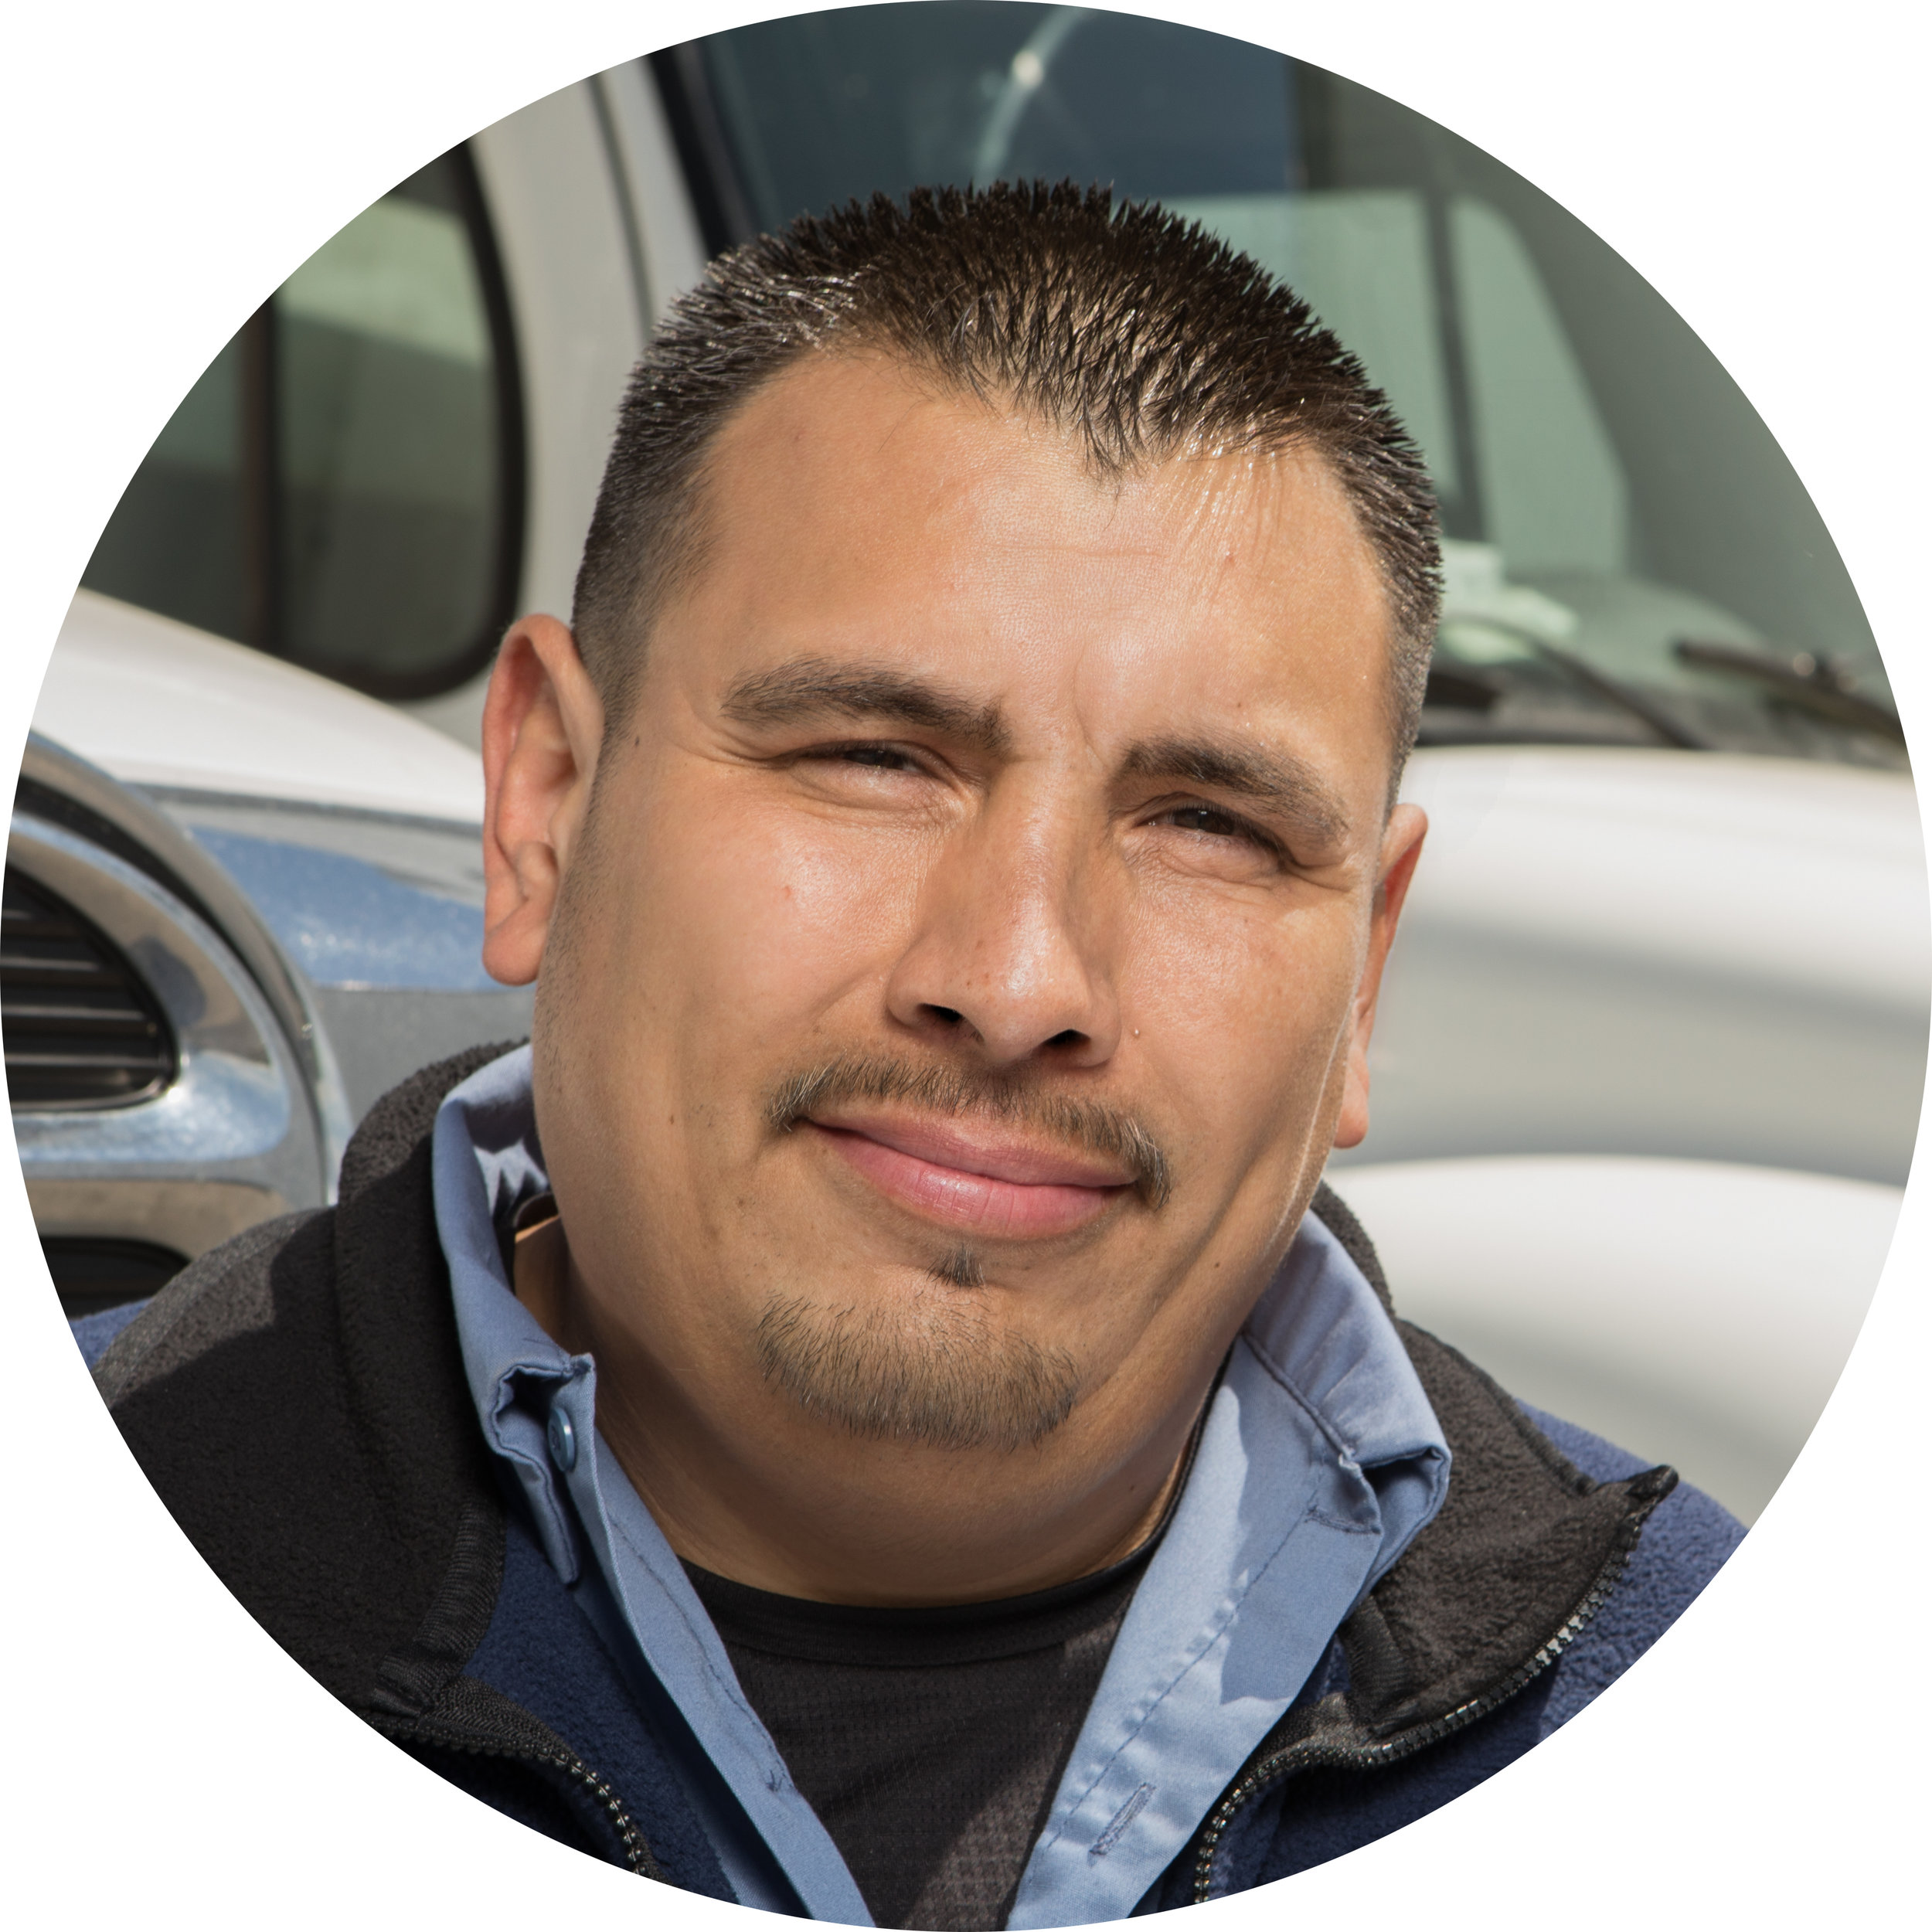 """GERALD - """"I love the sense of accomplishment I get from having an empty truck and seeing my customers' smiling faces. It's great hearing their positive feedback when we solve their problems and bring what they need to keep their business thriving!"""""""